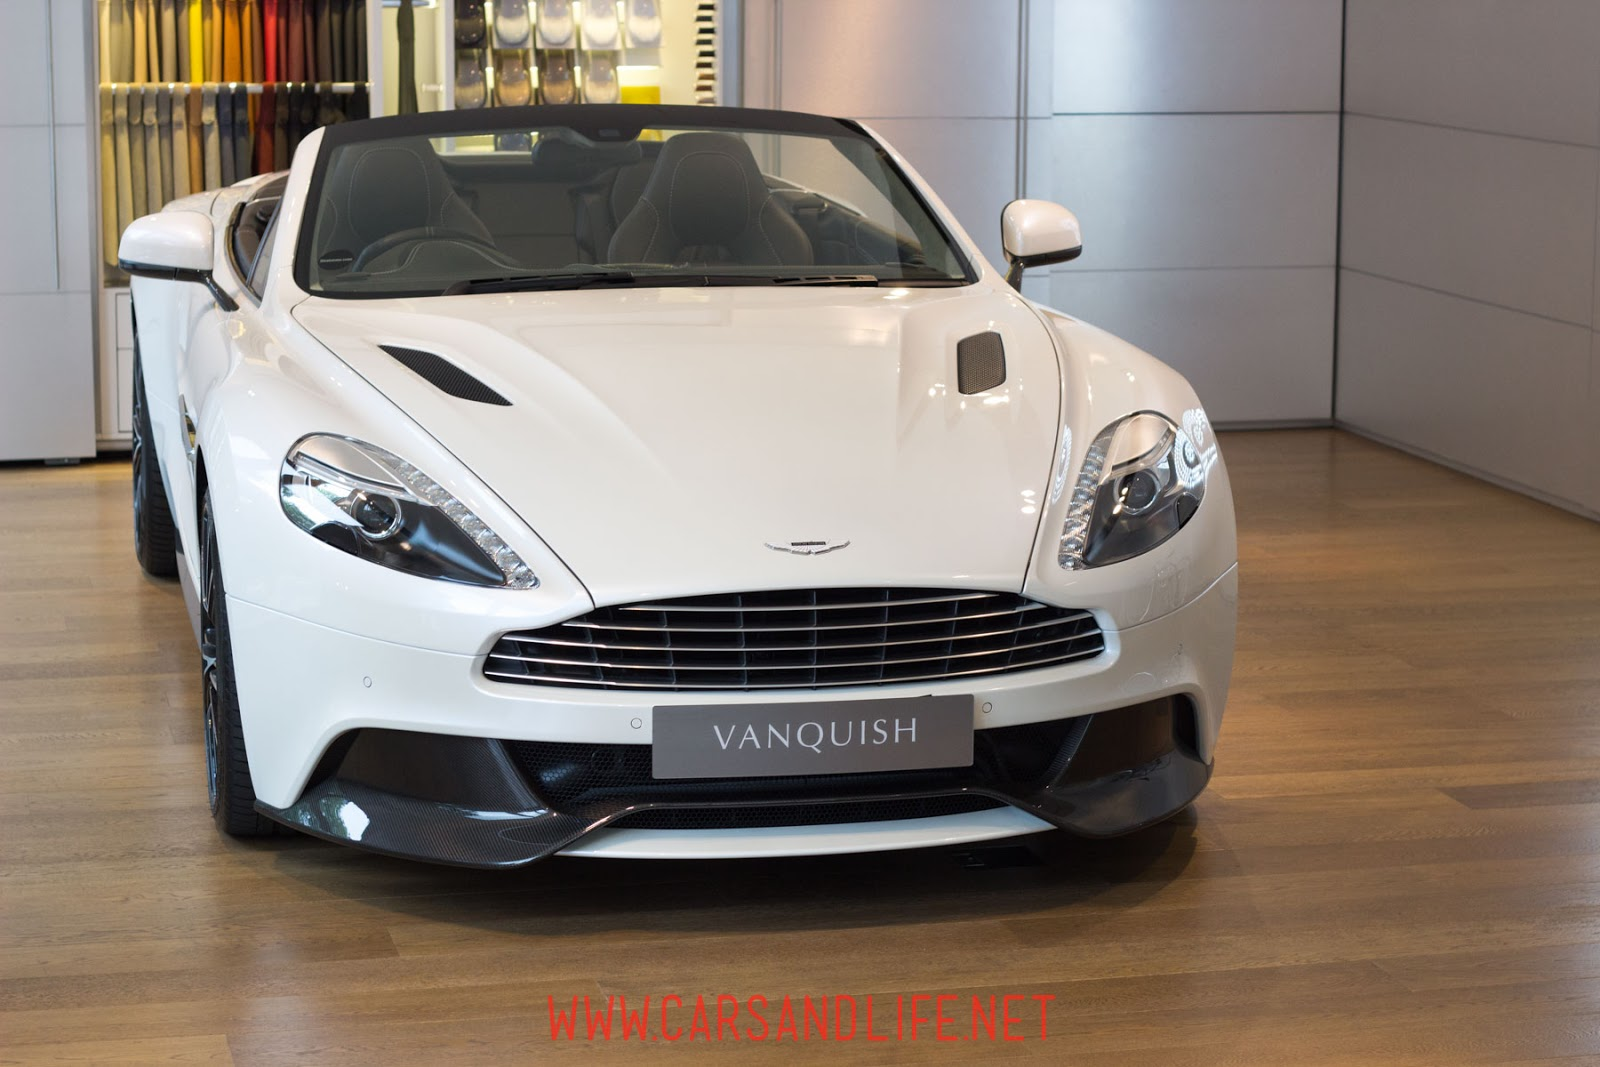 New Aston Martin Vanquish at W-One London Dealer